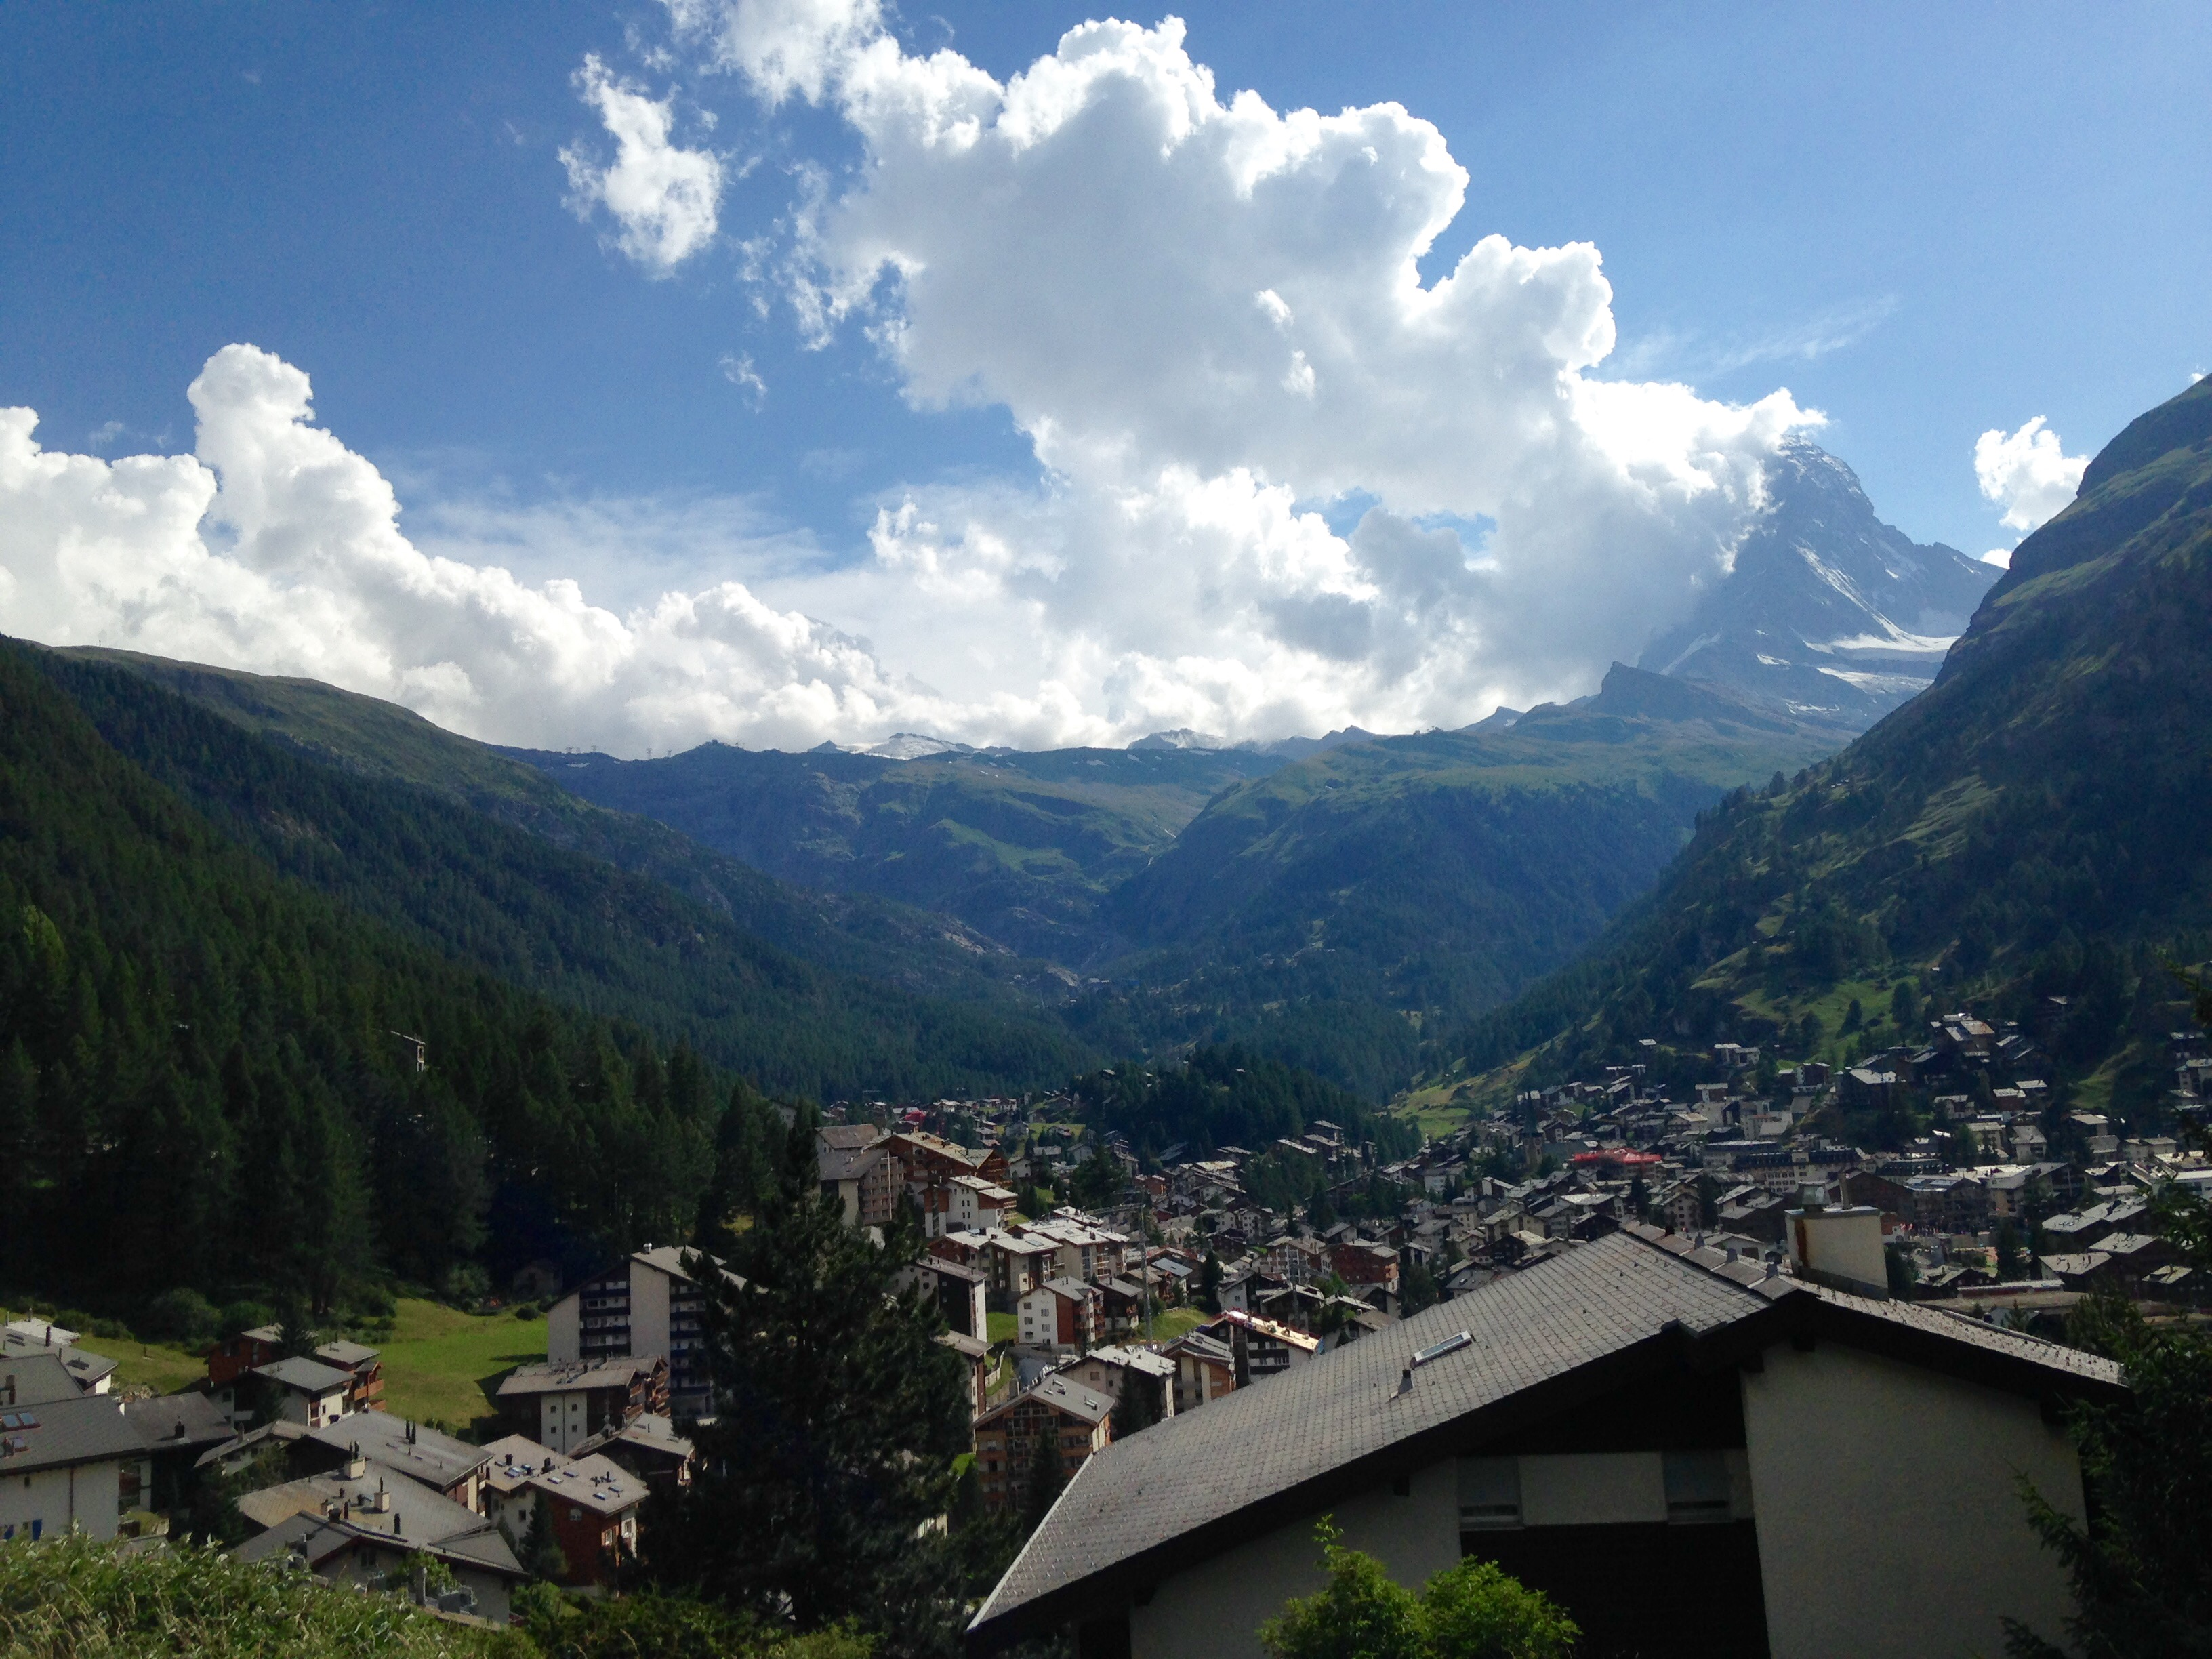 View from the chalet to the Matterhorn